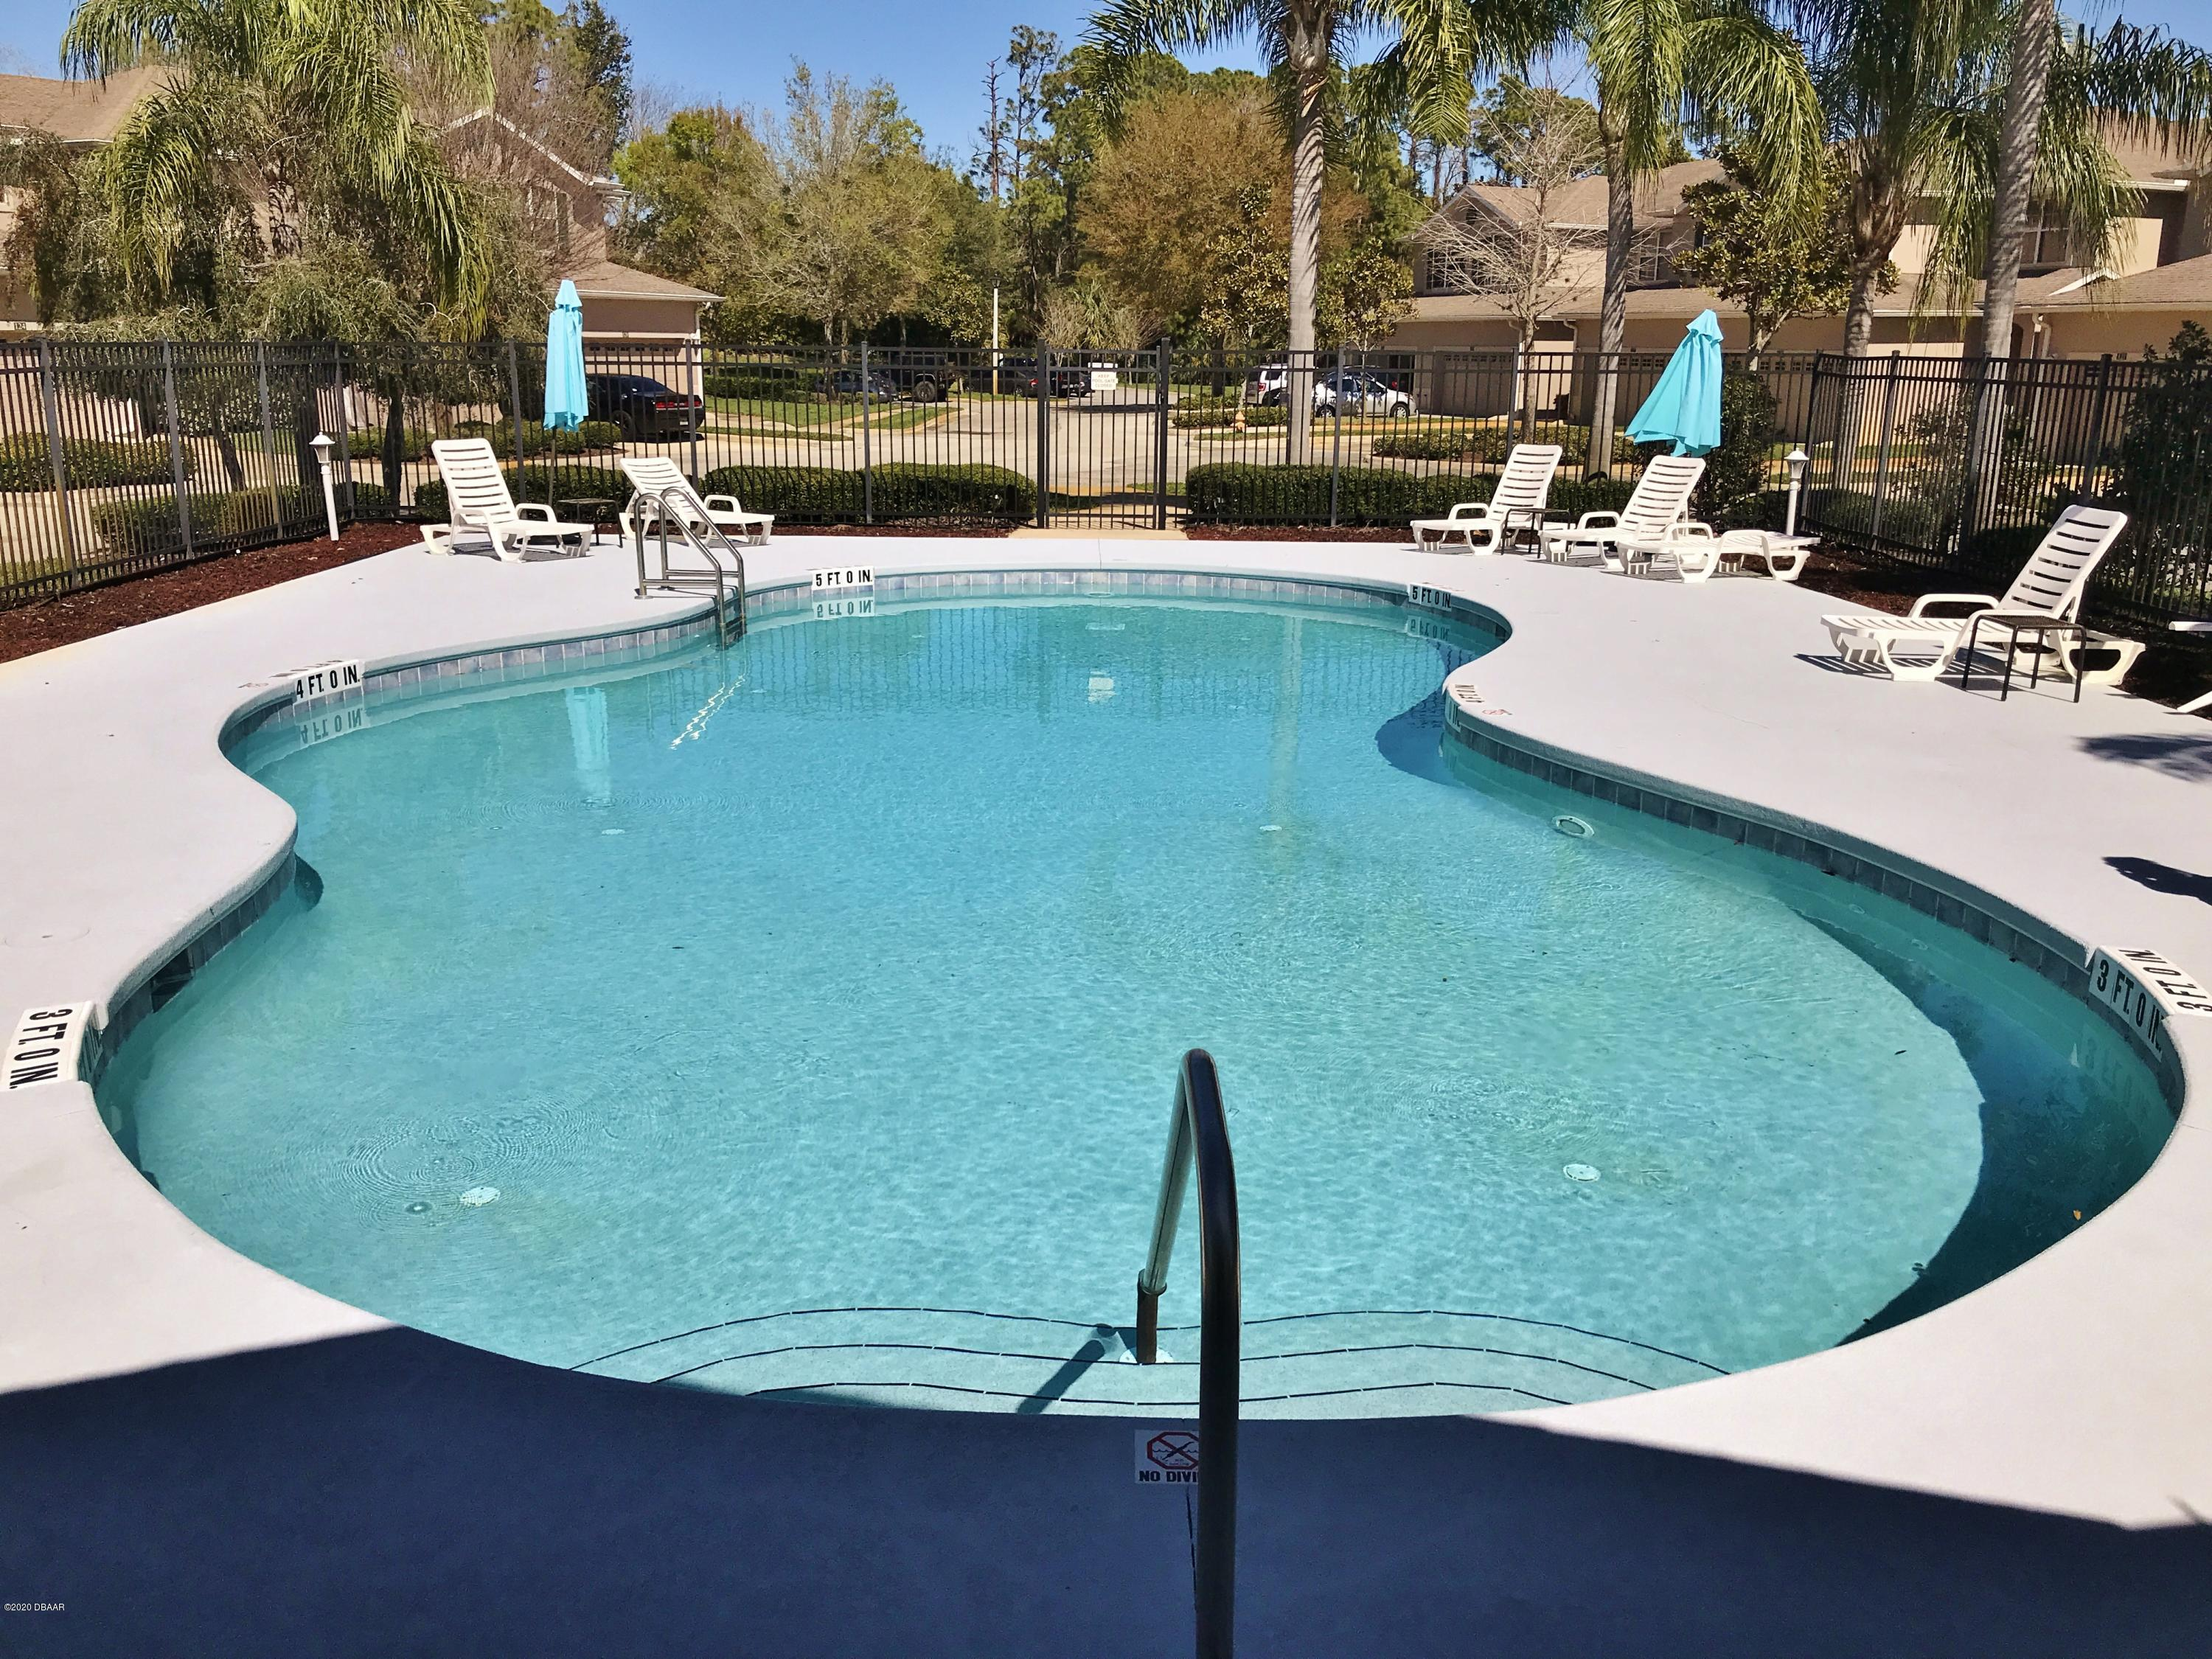 108 Grey Widgeon Daytona Beach - 6